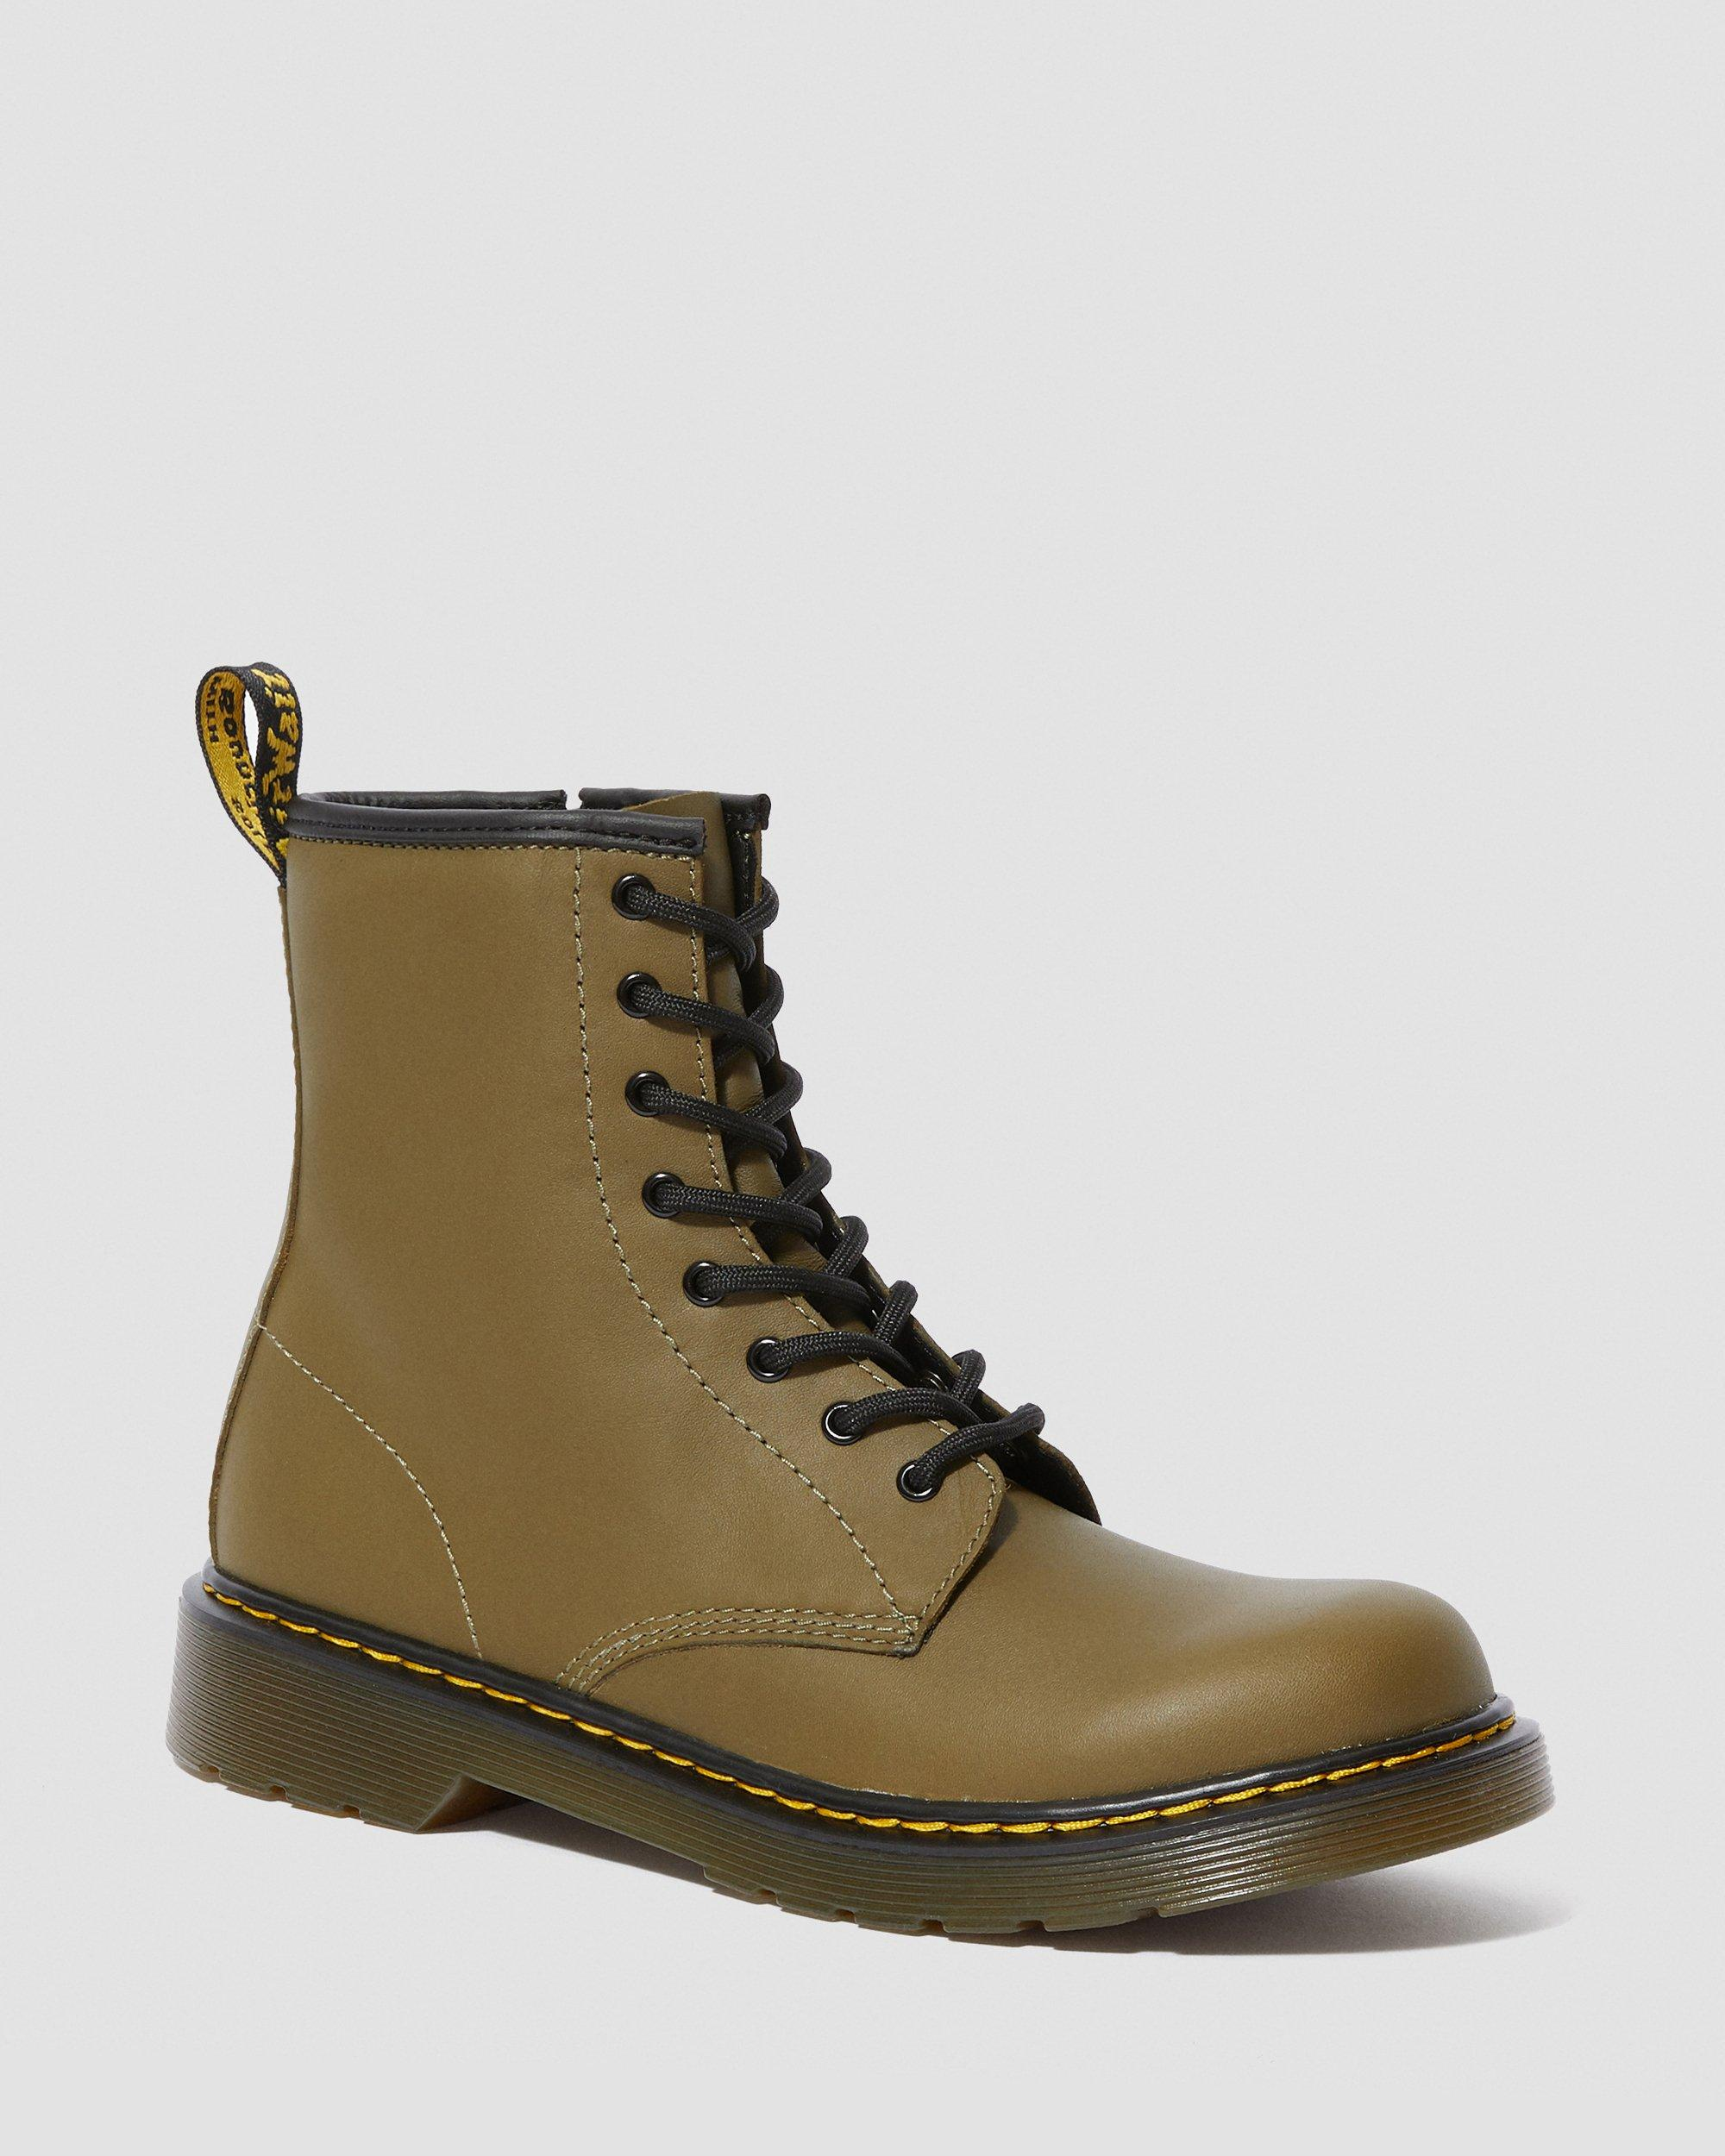 1460 YOUTH | SALE | Leather Boots